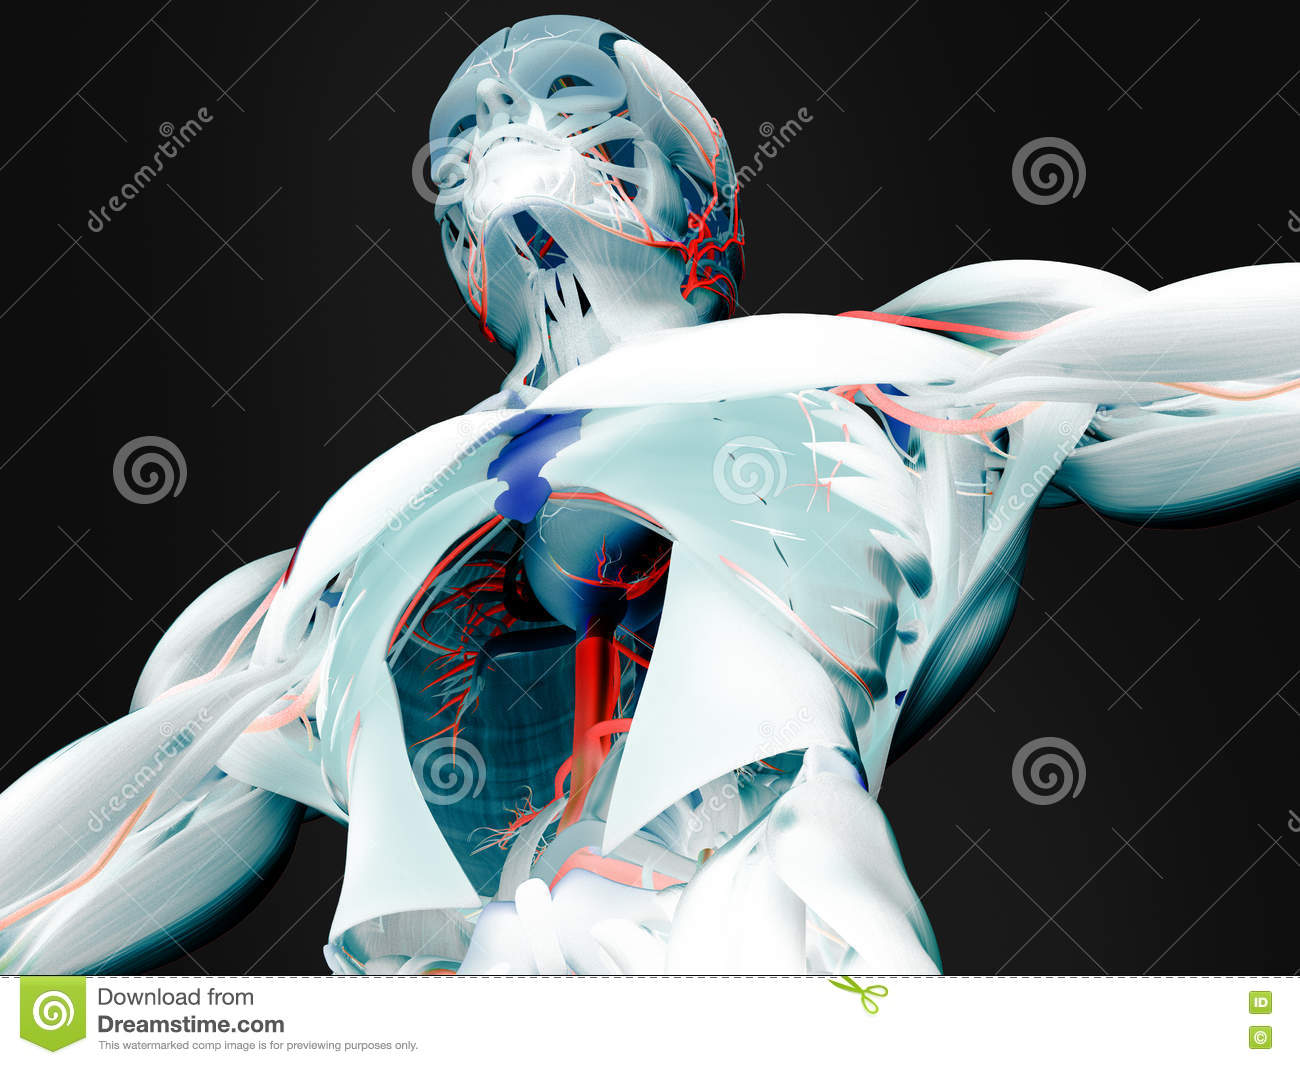 Anatomie Muskeln Stock Photos - Royalty Free Images